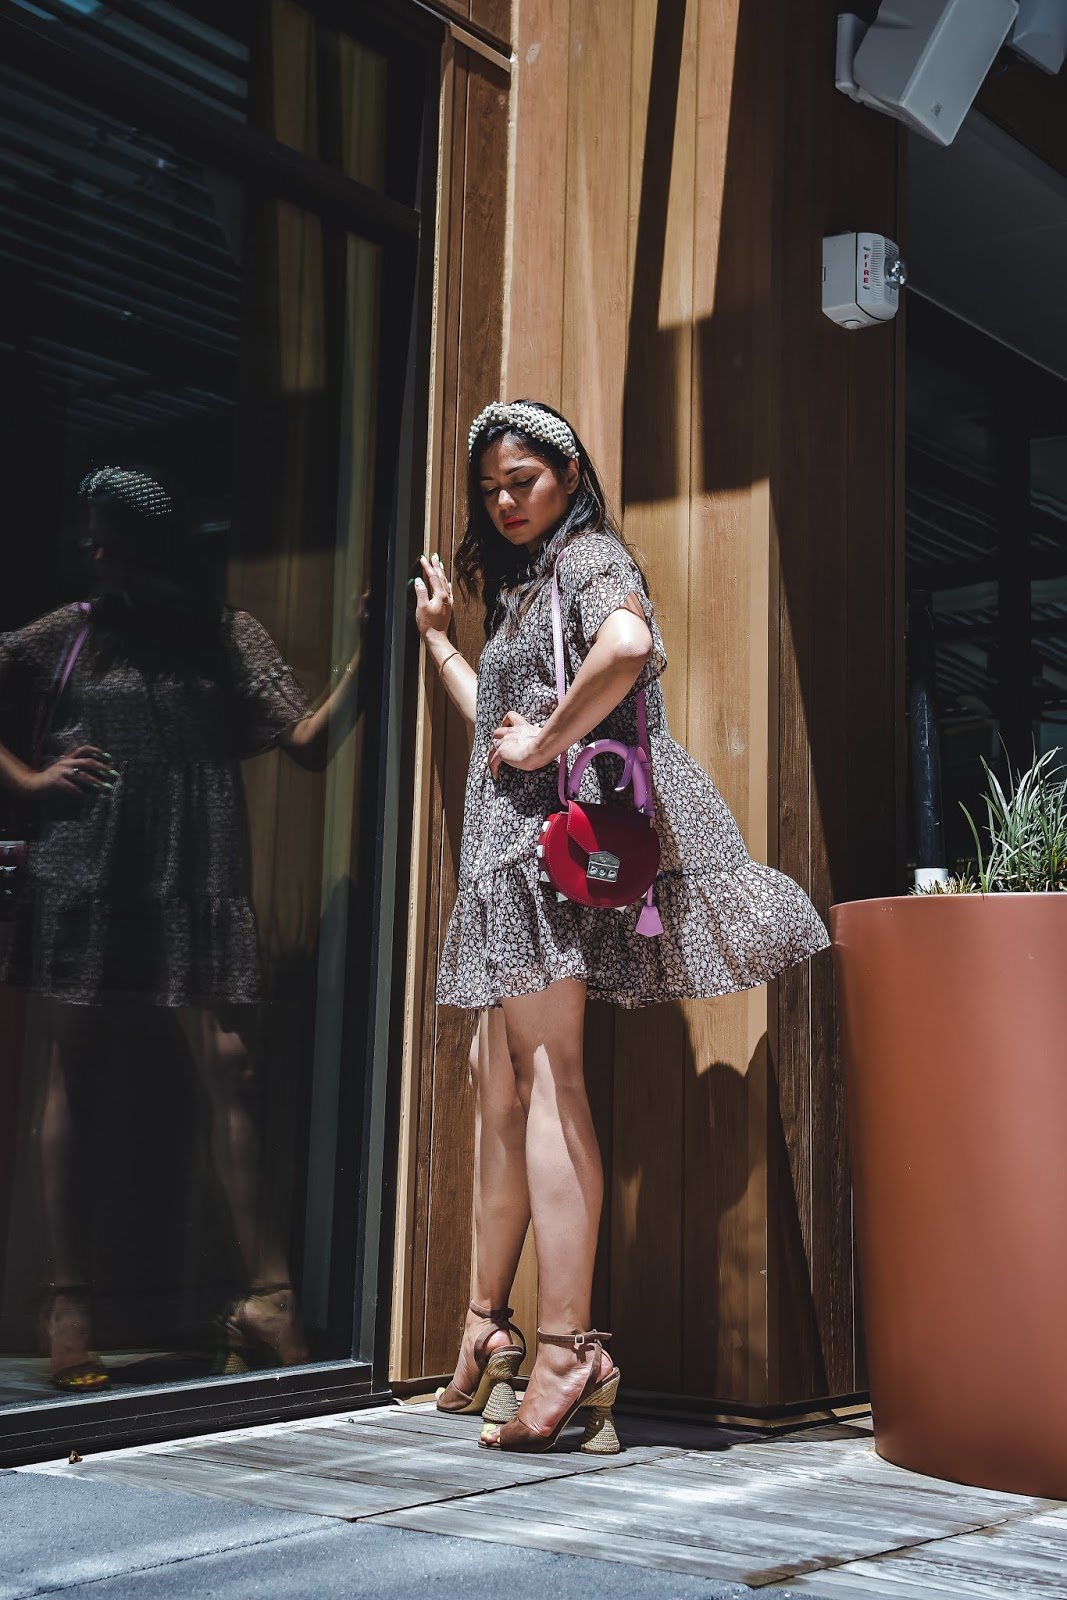 summer floral dress, cone heel sandals, neutral in summer, mini dress with heels, wedding outfit, lele sadoughi headband, pink purse, fashion, style, myriad musings, saumya shiohare